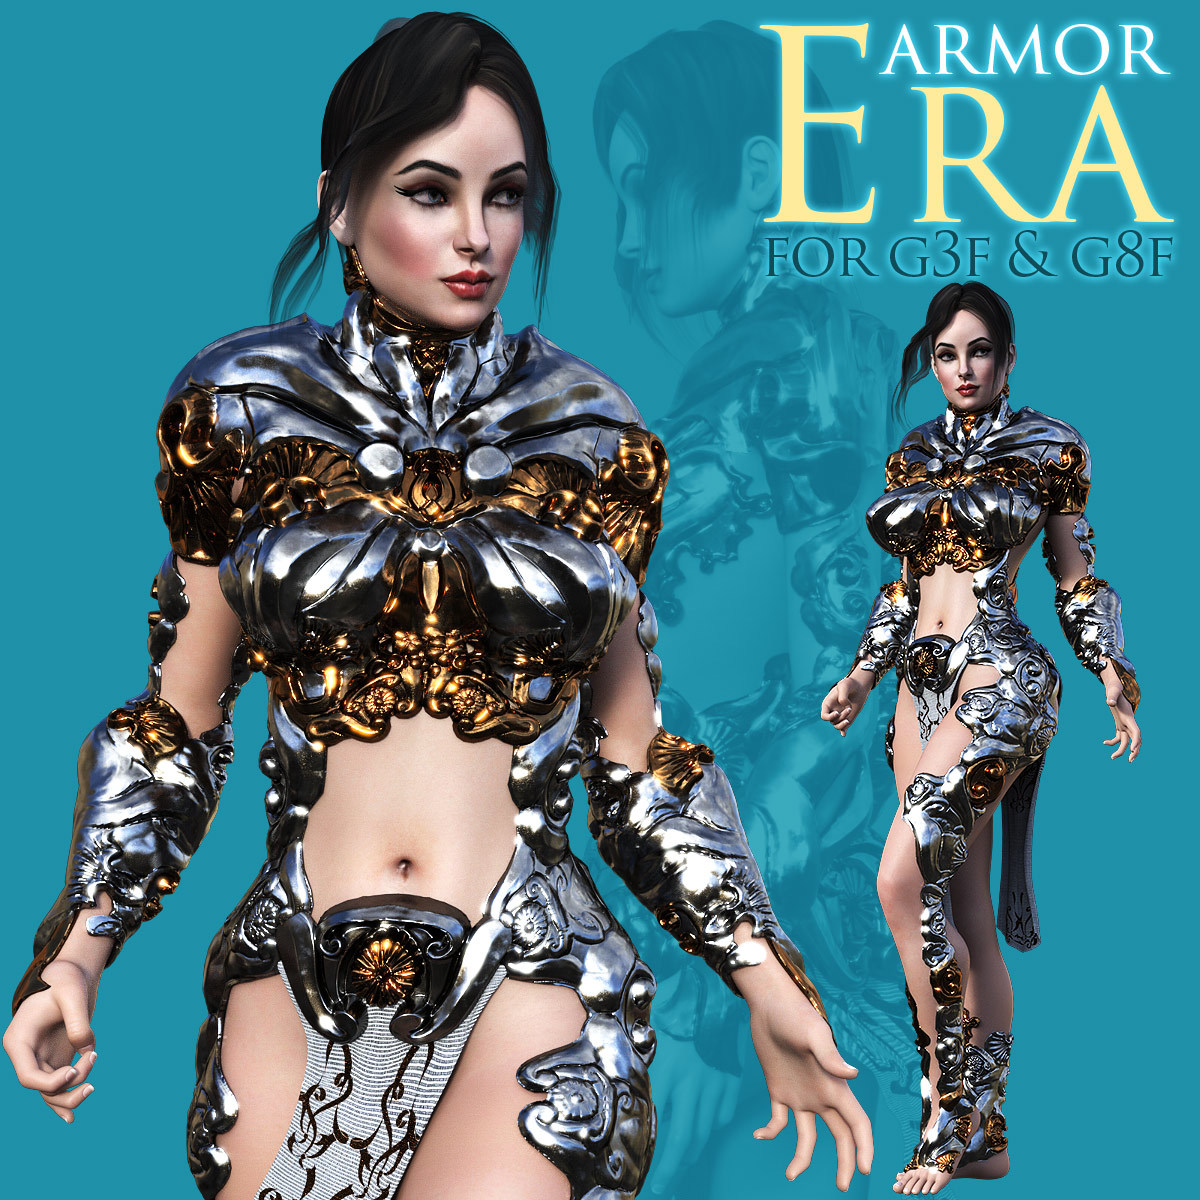 Era Armor for G3 females and G8 females by powerage